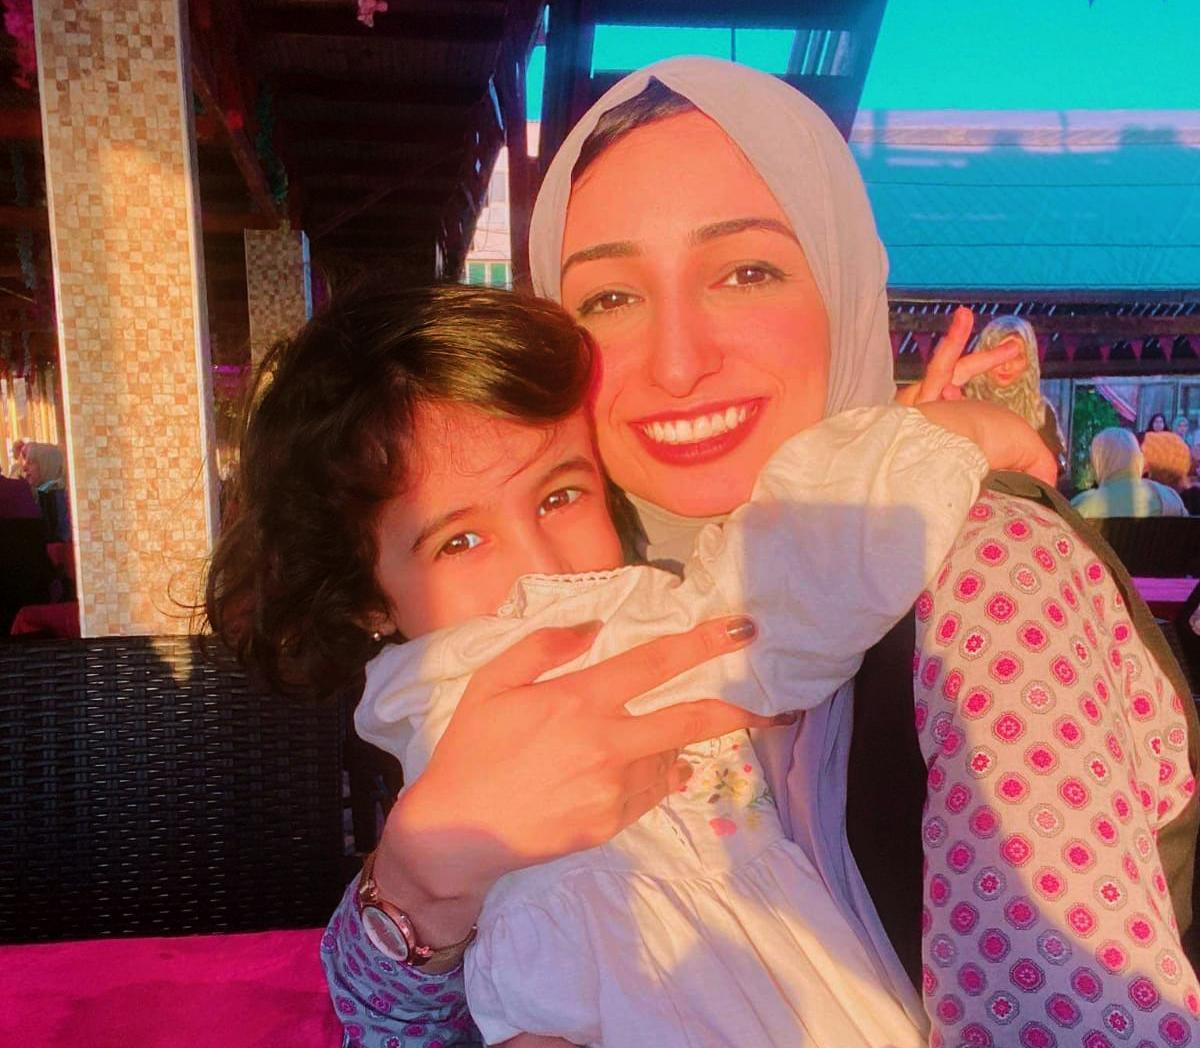 Israa Hatem and her daughter. (Courtesy of Israa Hatem)